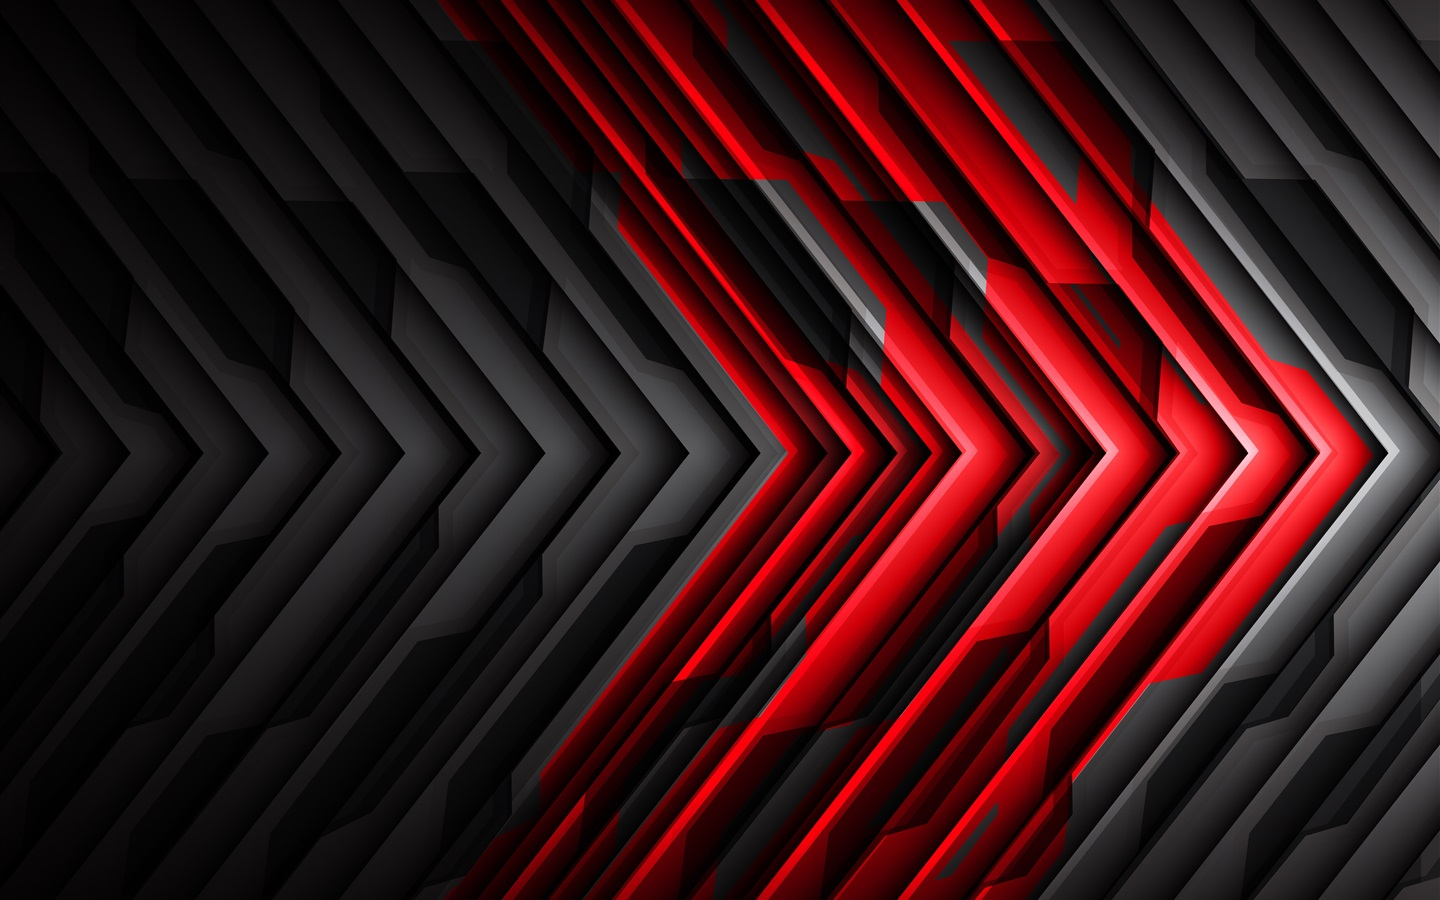 Fondos de pantalla flecha de rayas negras y rojas - Black red abstract wallpaper ...